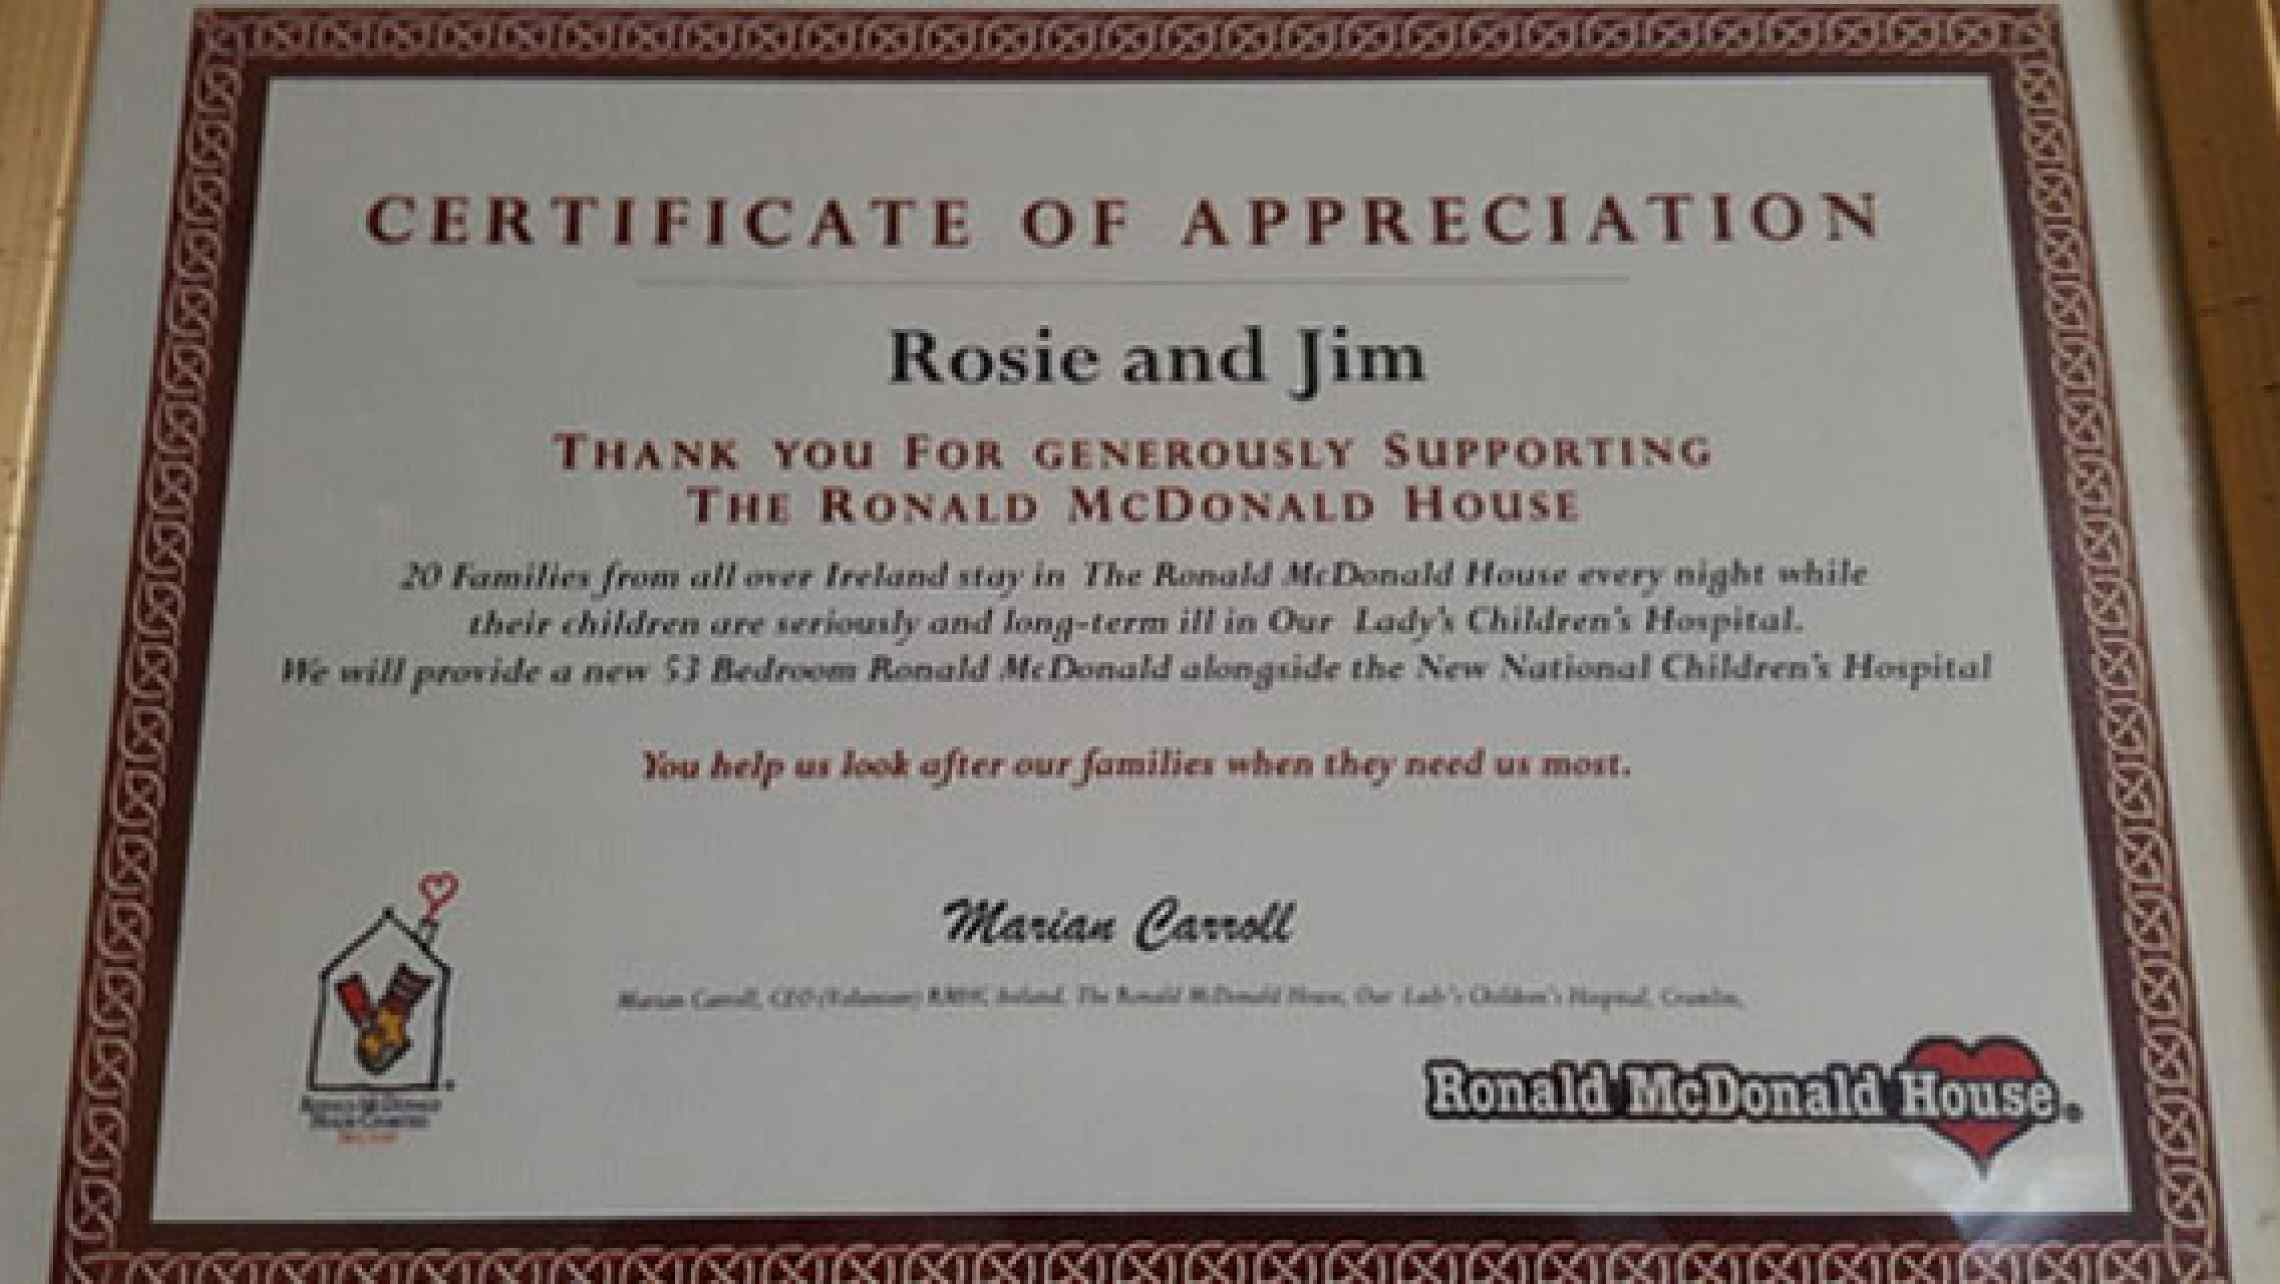 Ronald mcdonald house charities certificate of appreciation rosie ronald mcdonald house charities have awarded rosie jim with a certificate of appreciation for our chicken donations here is a photo of the award pictured yadclub Image collections